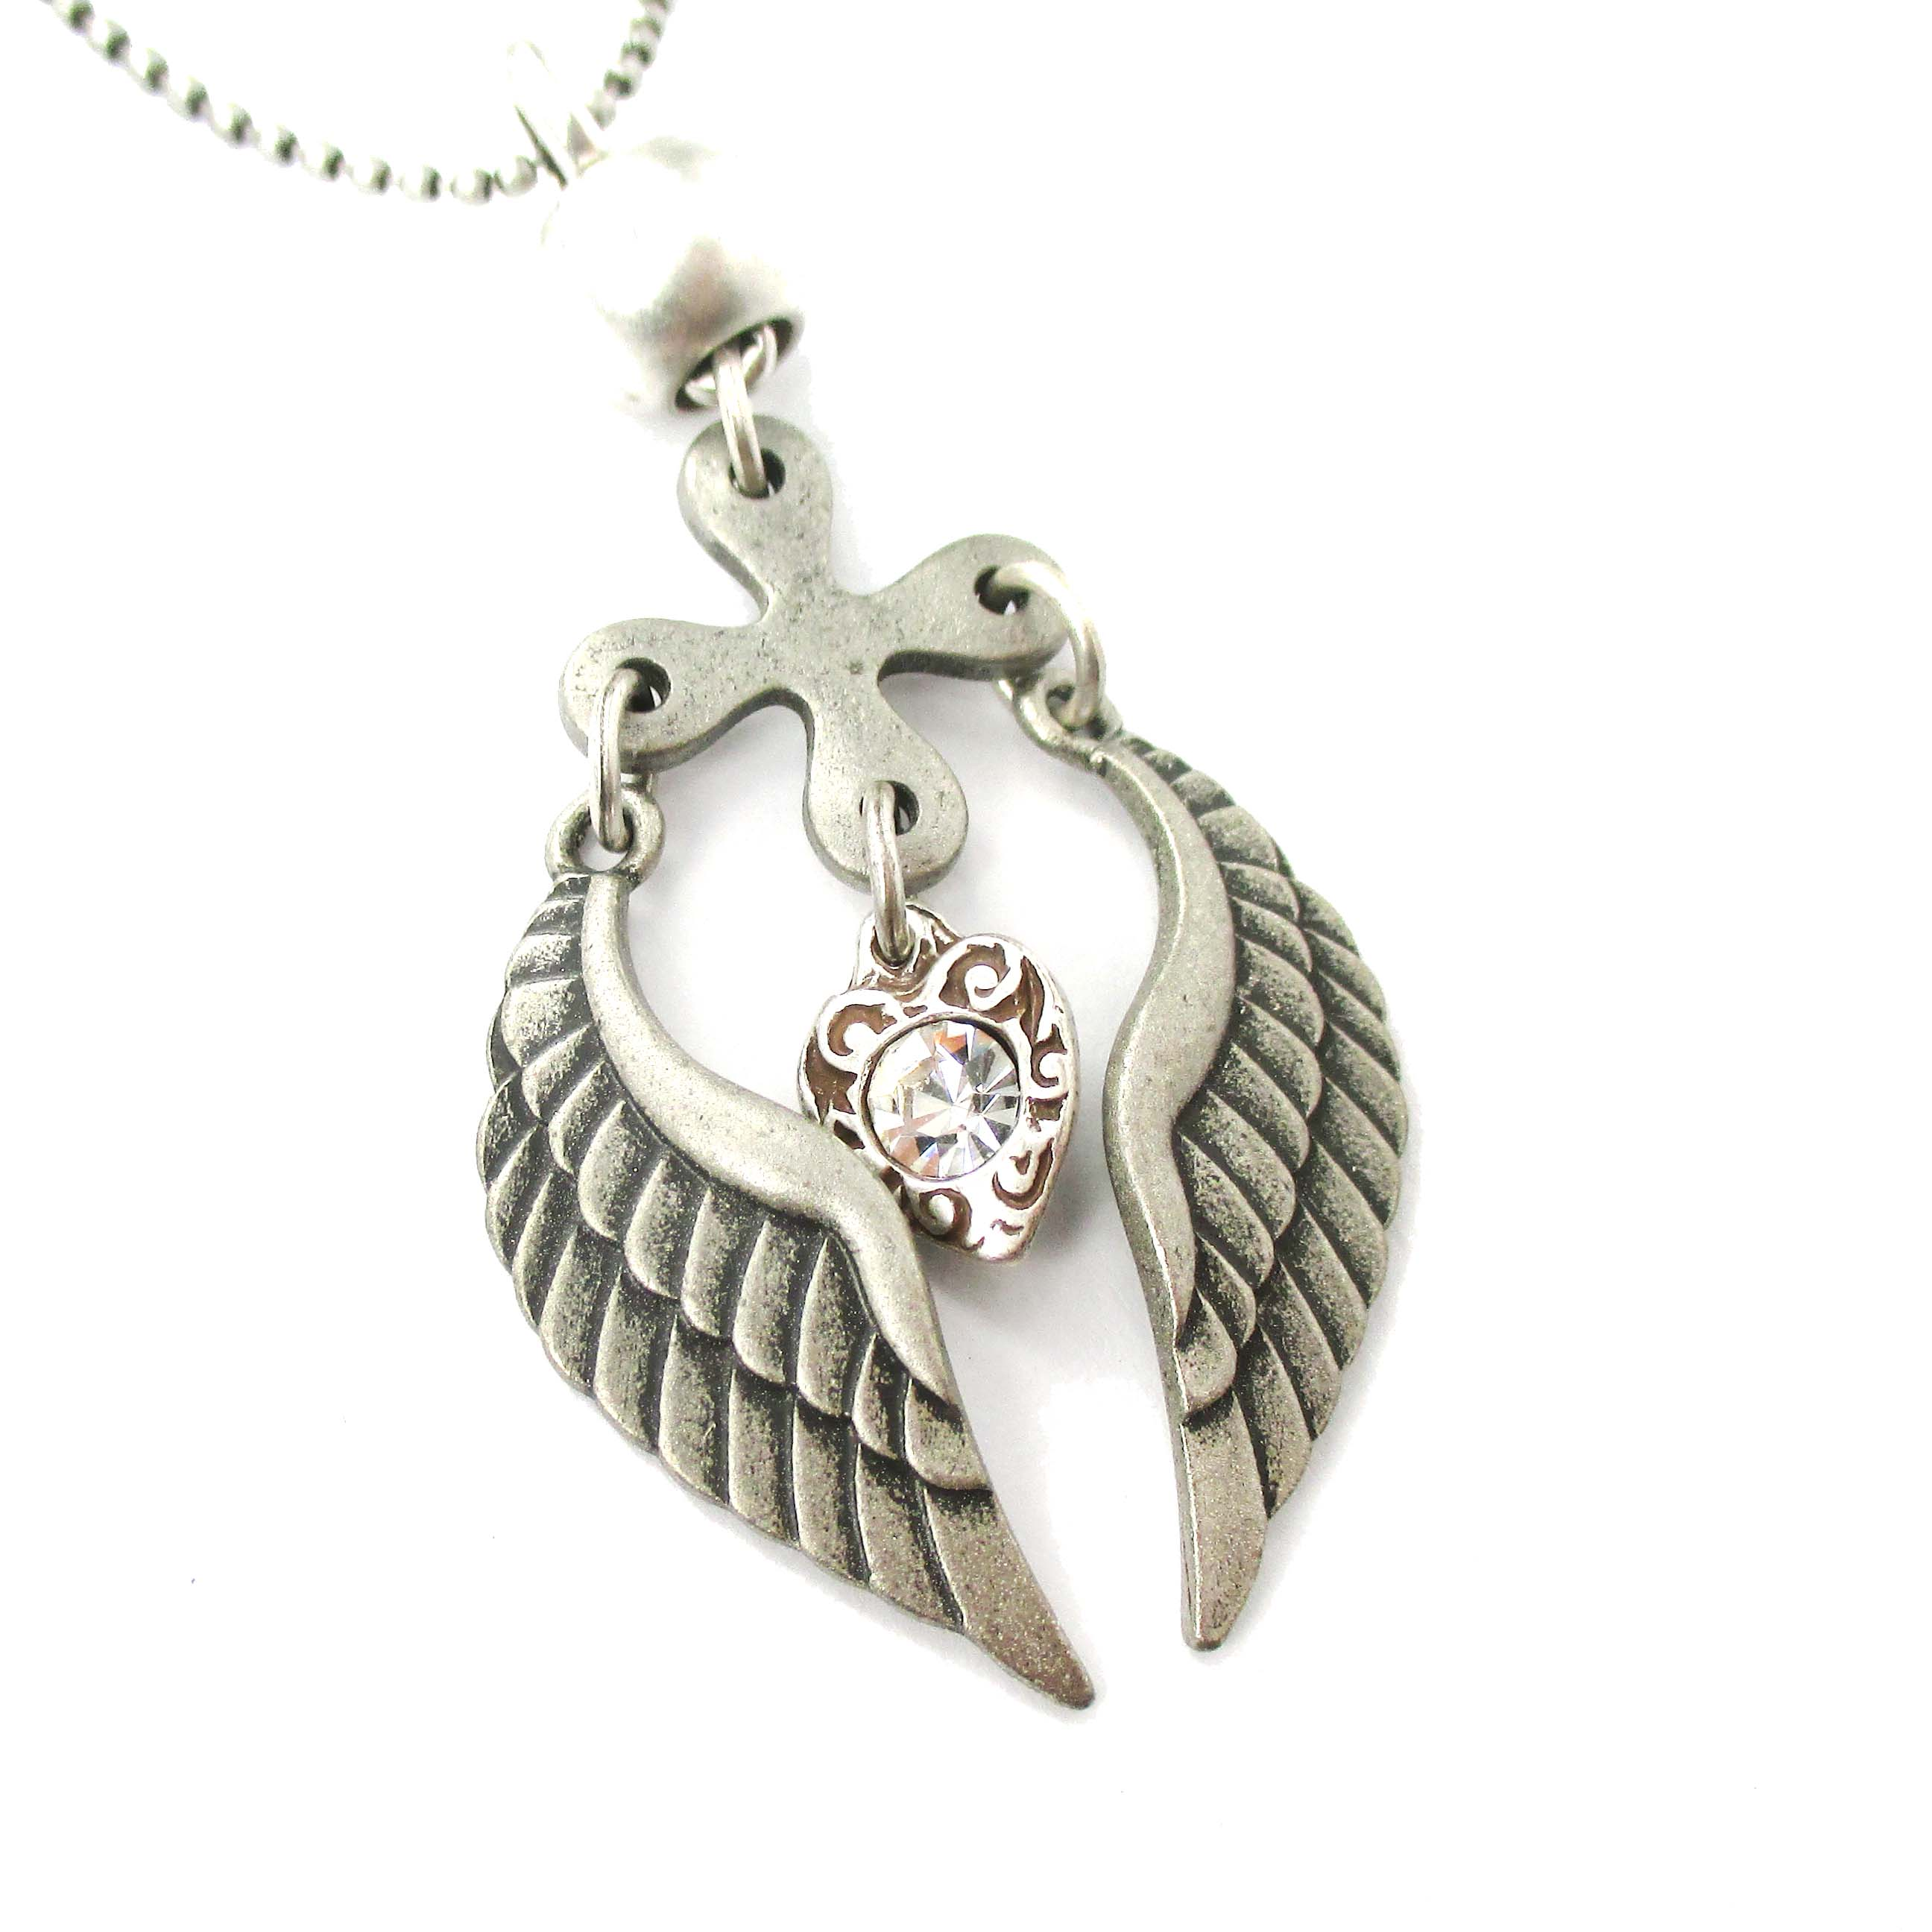 w valentines products couples angel stainless her pendant steel chain him necklaces gifts wings for pendants lovers couple necklace day